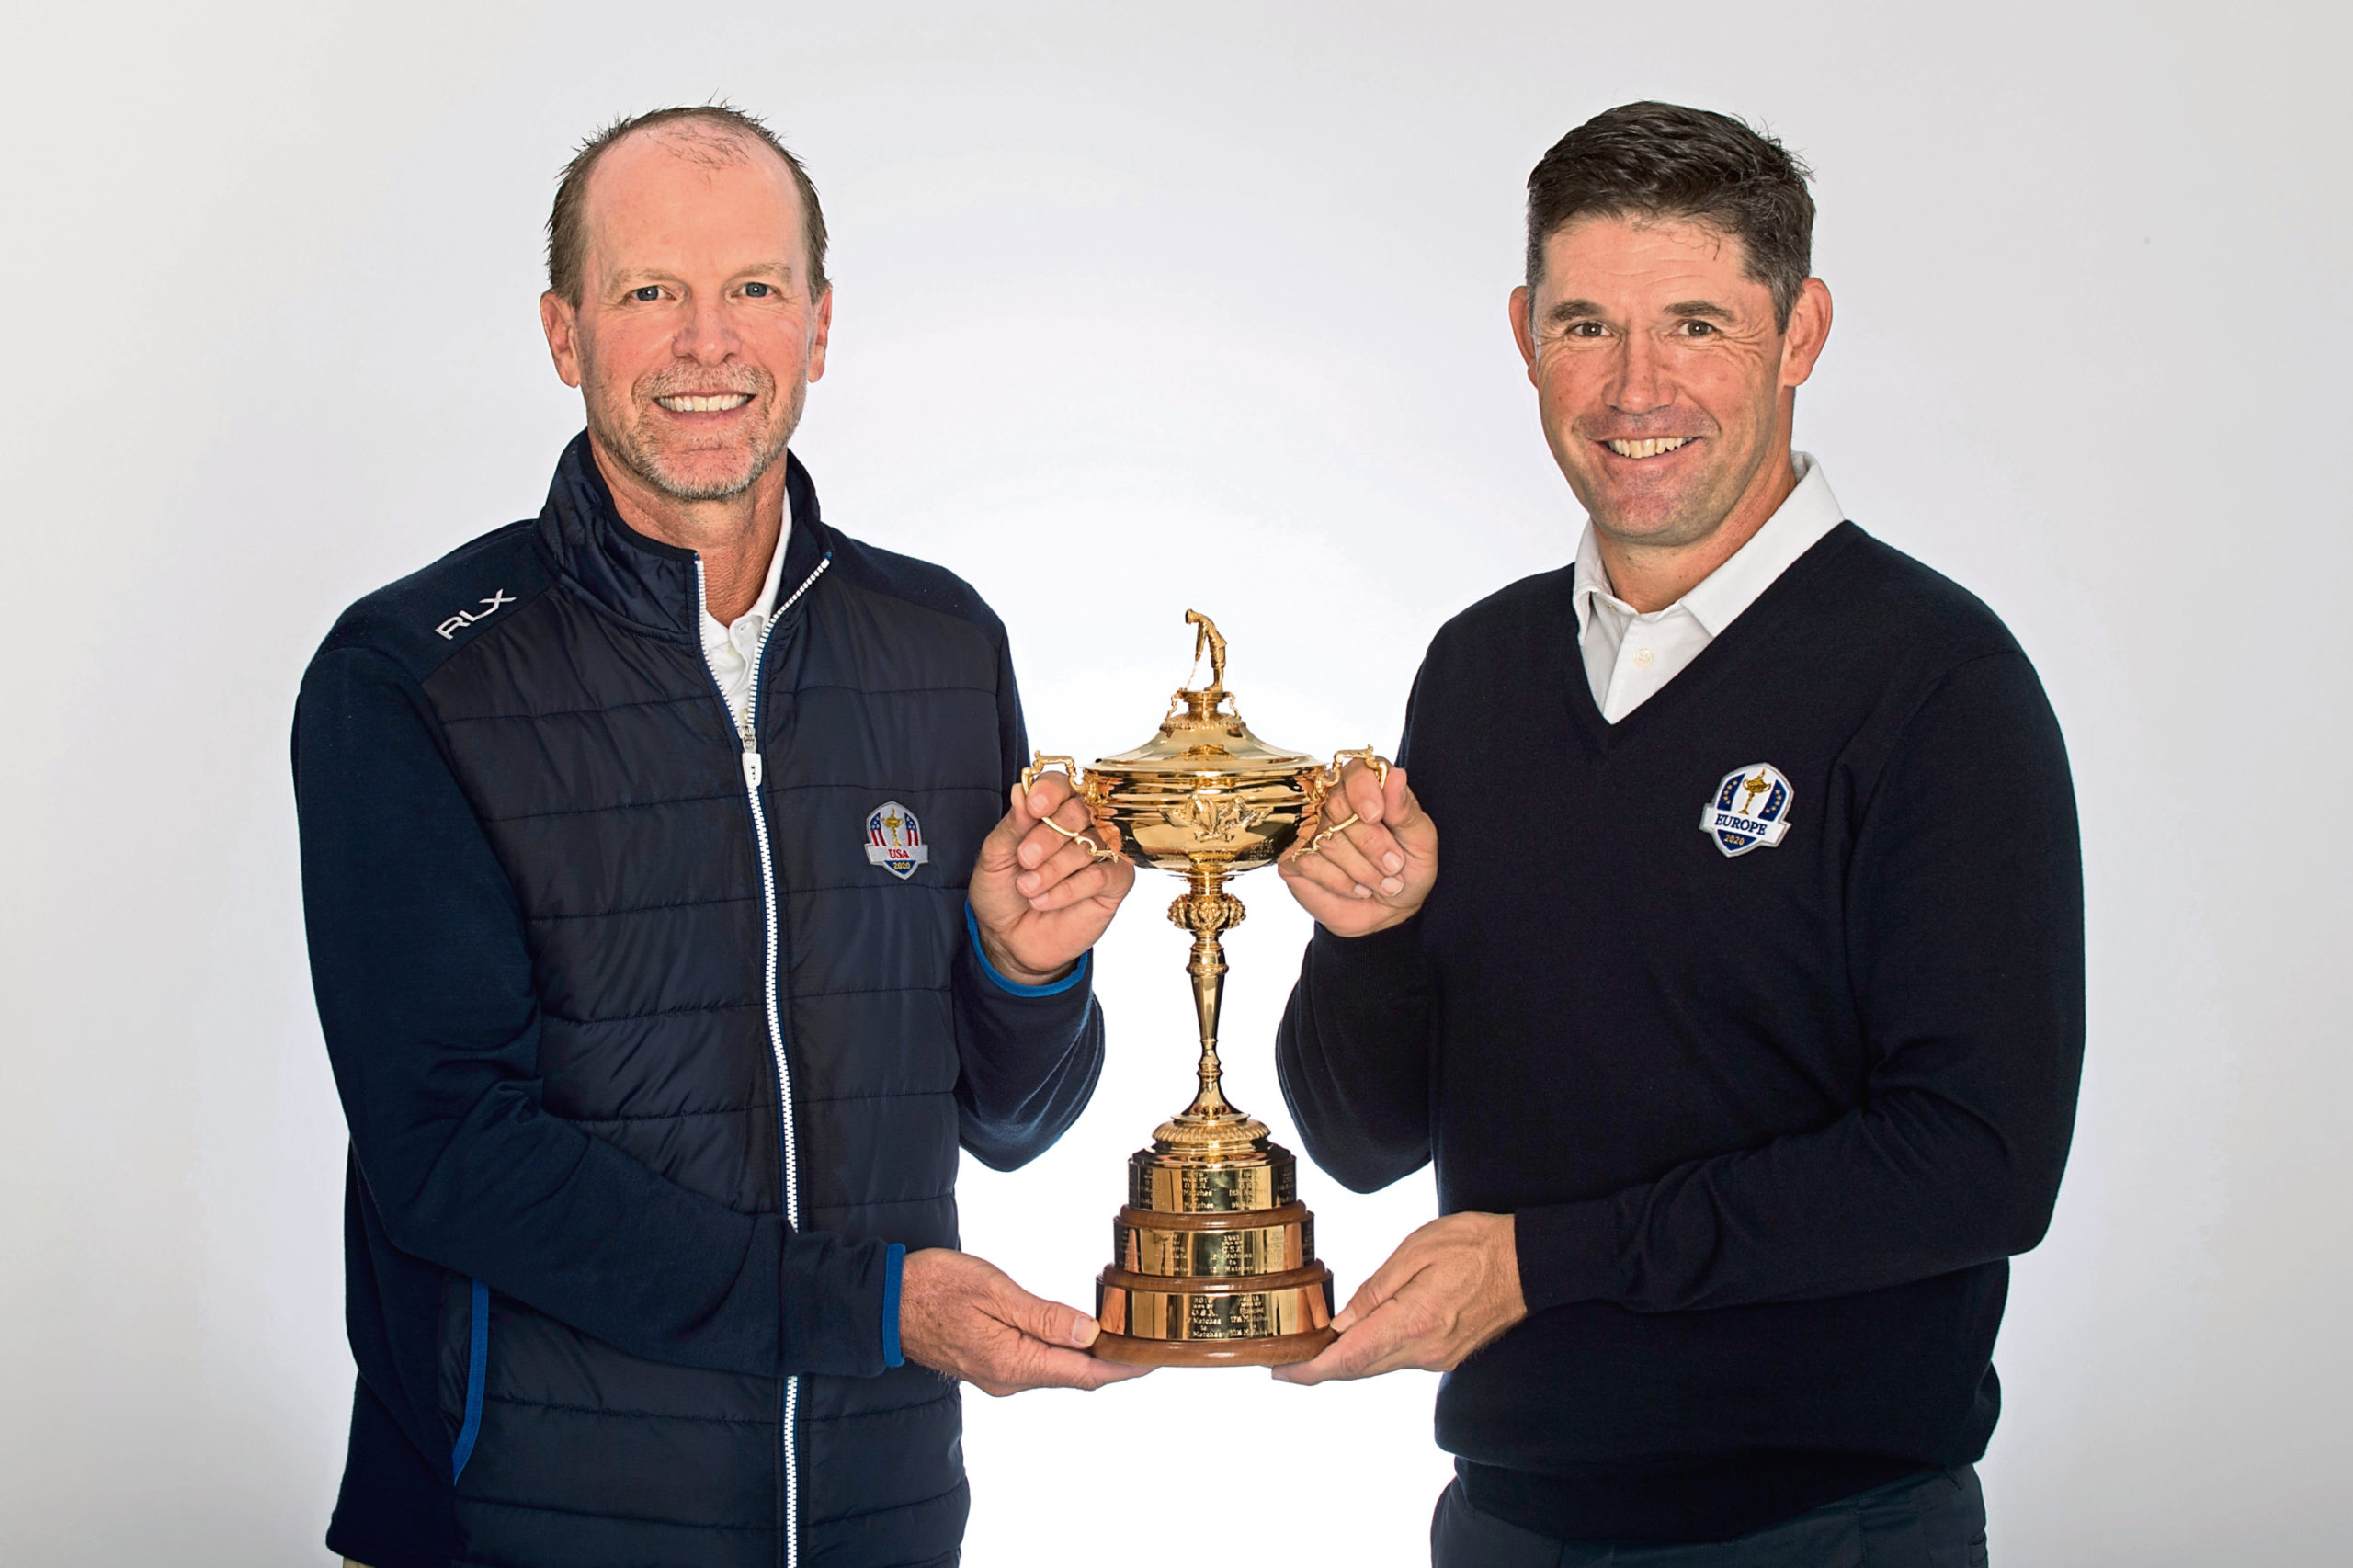 Ryder Cup captains Steve Stricker and Padraig Harrington.